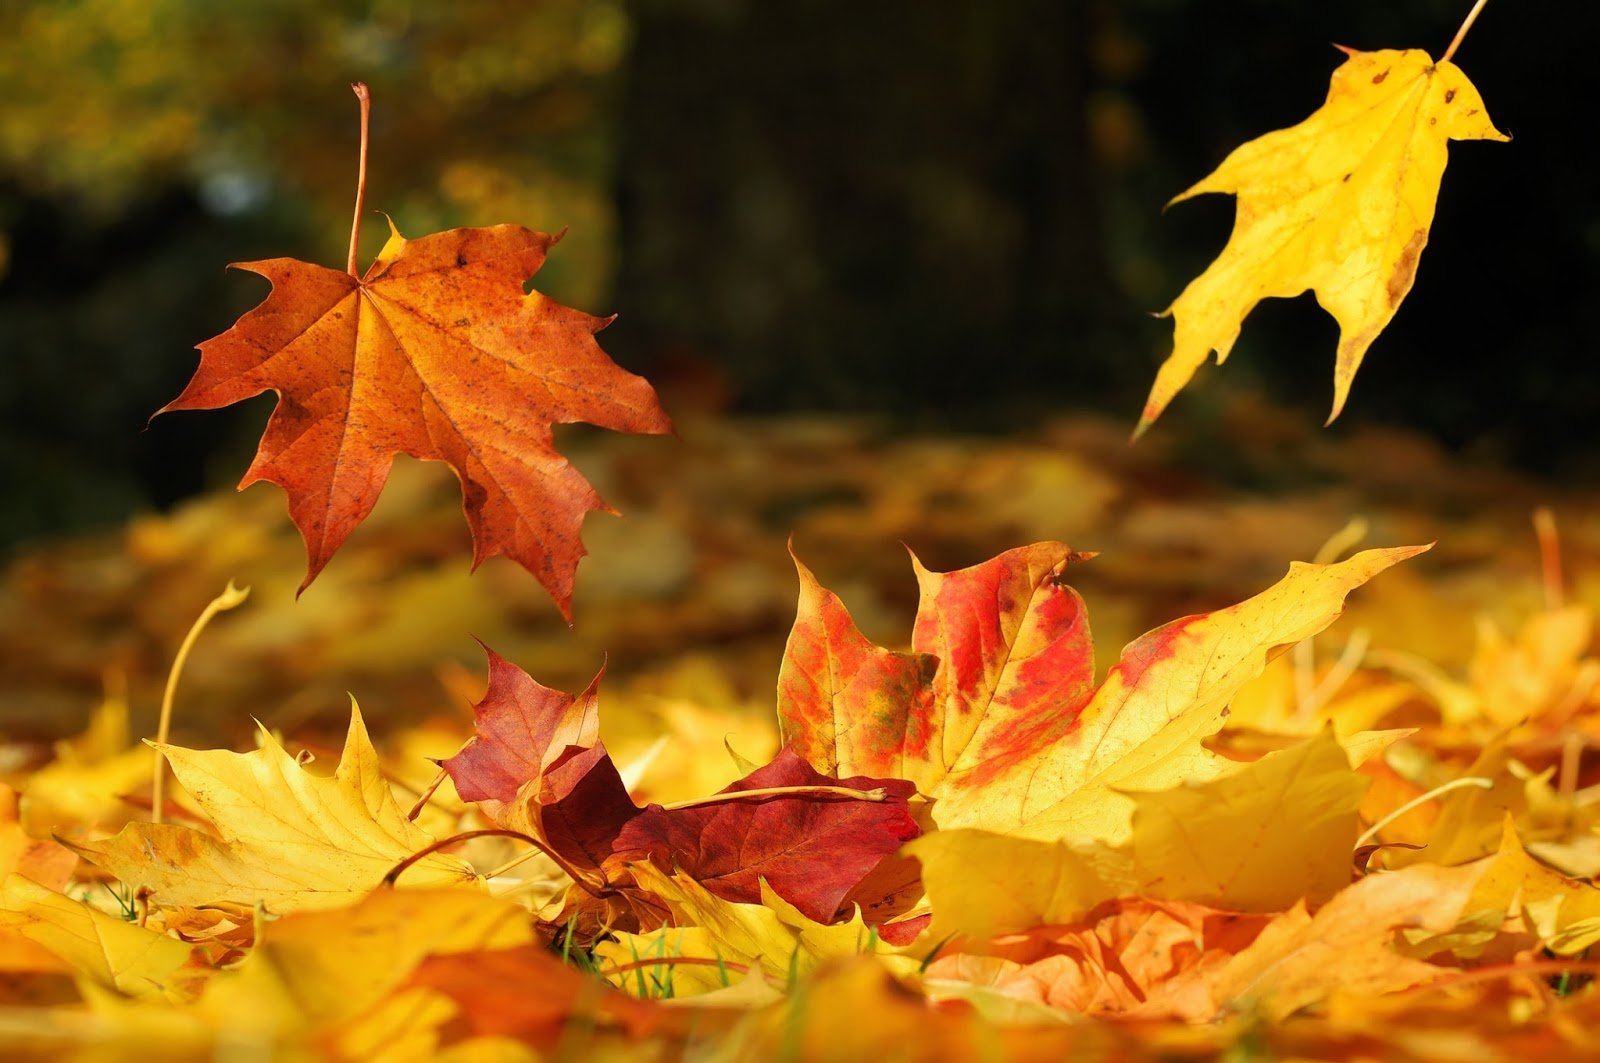 Autumn leaves set to fall!